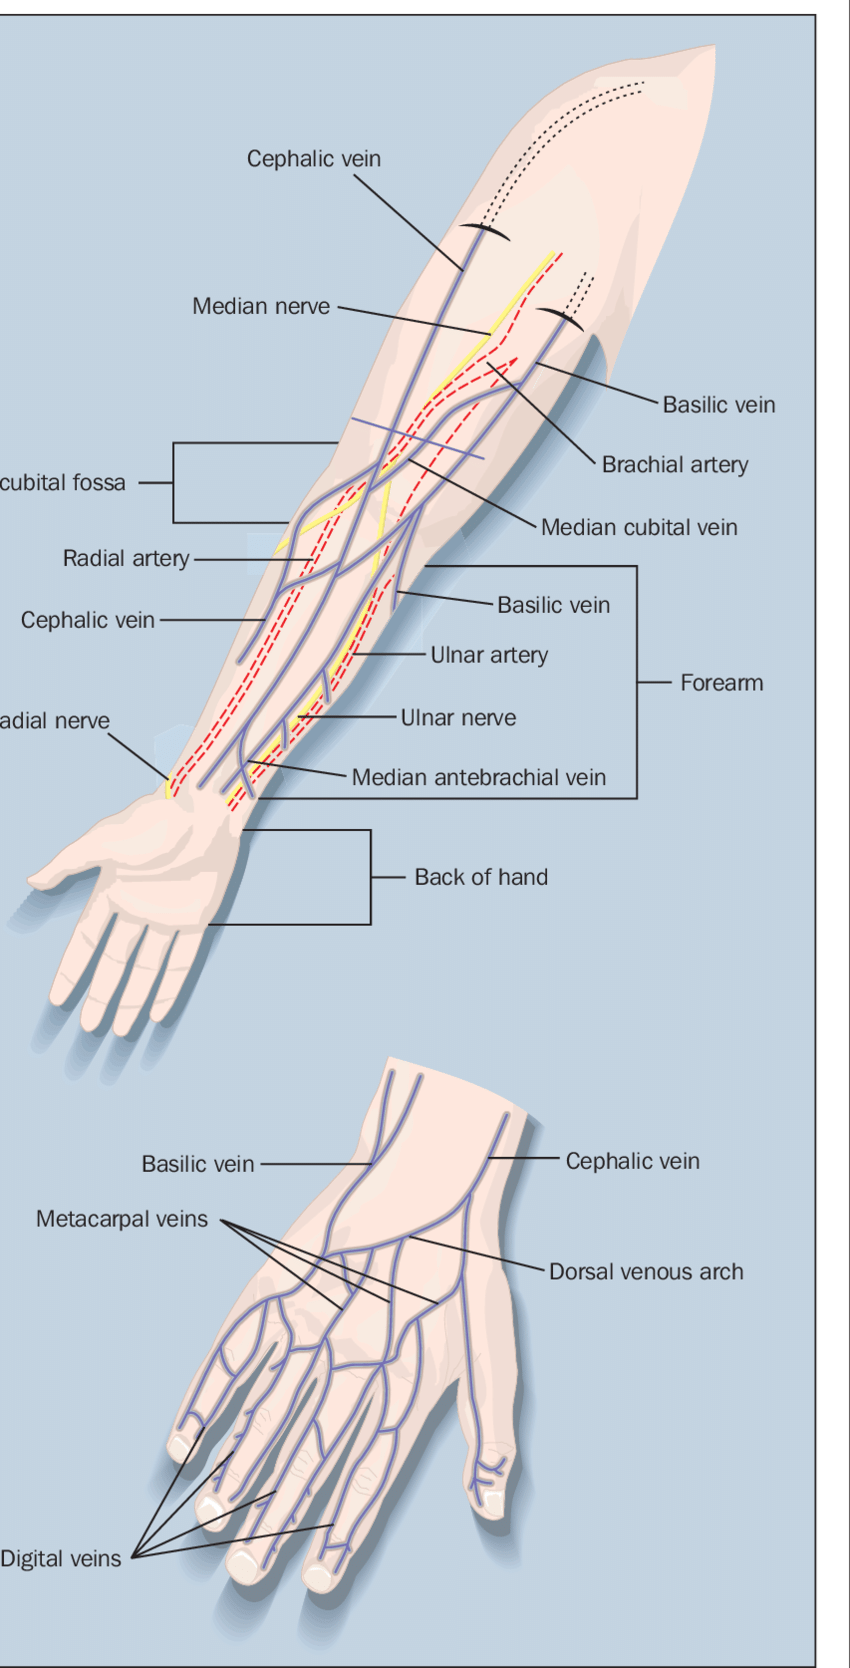 medium resolution of the superficial veins of the forearm and the hand with cannulation sites